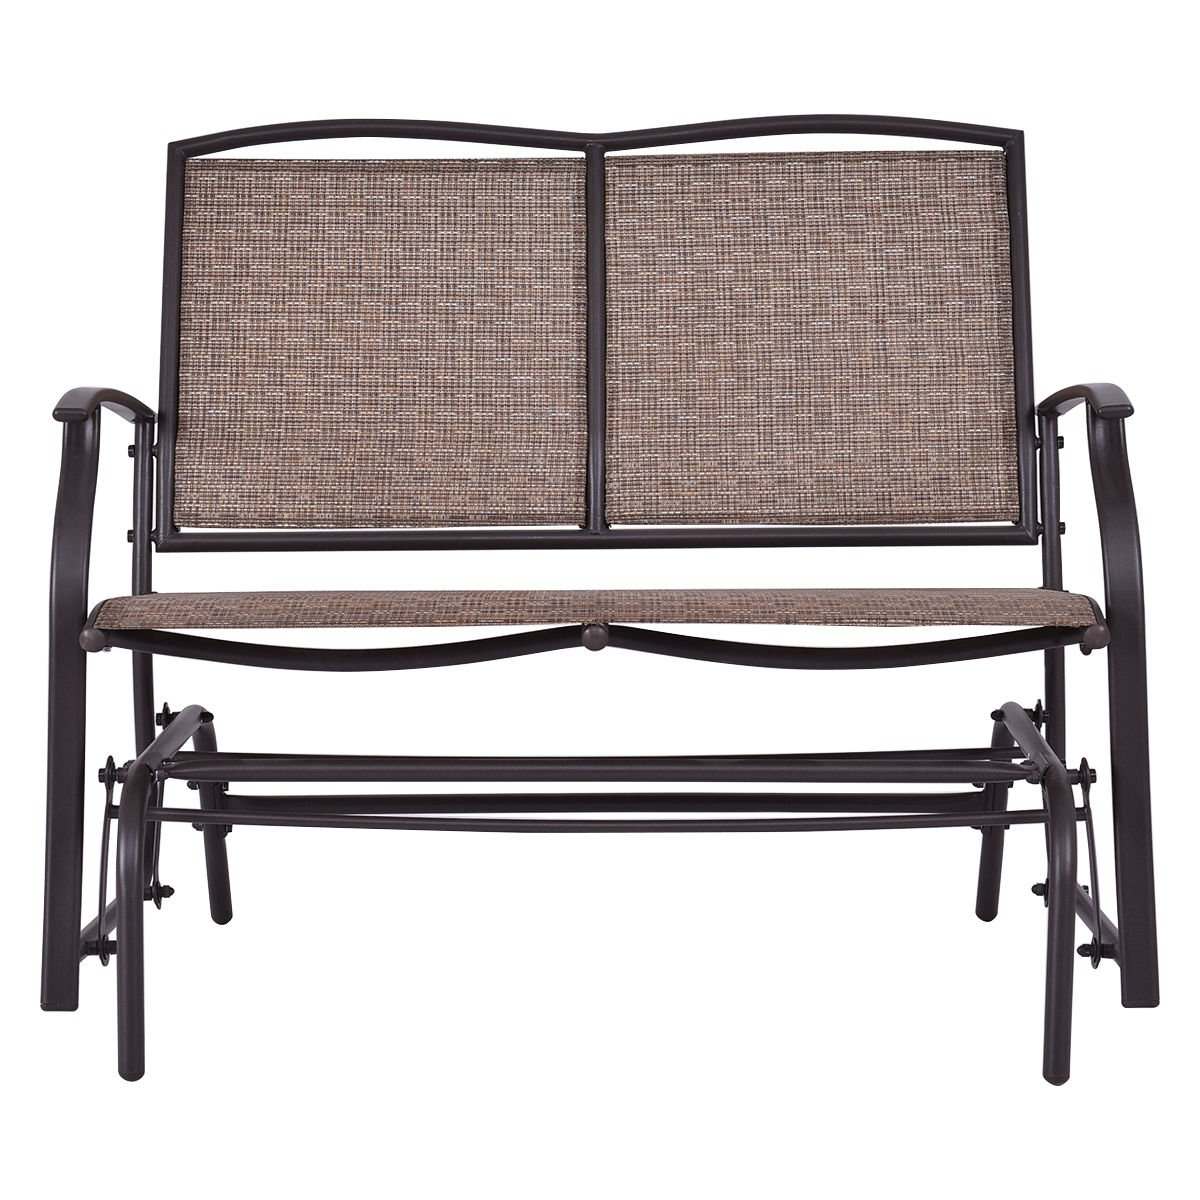 Amazon : Patio Glider Rocking Bench Double 2 Person Within Latest Twin Seat Glider Benches (View 11 of 31)